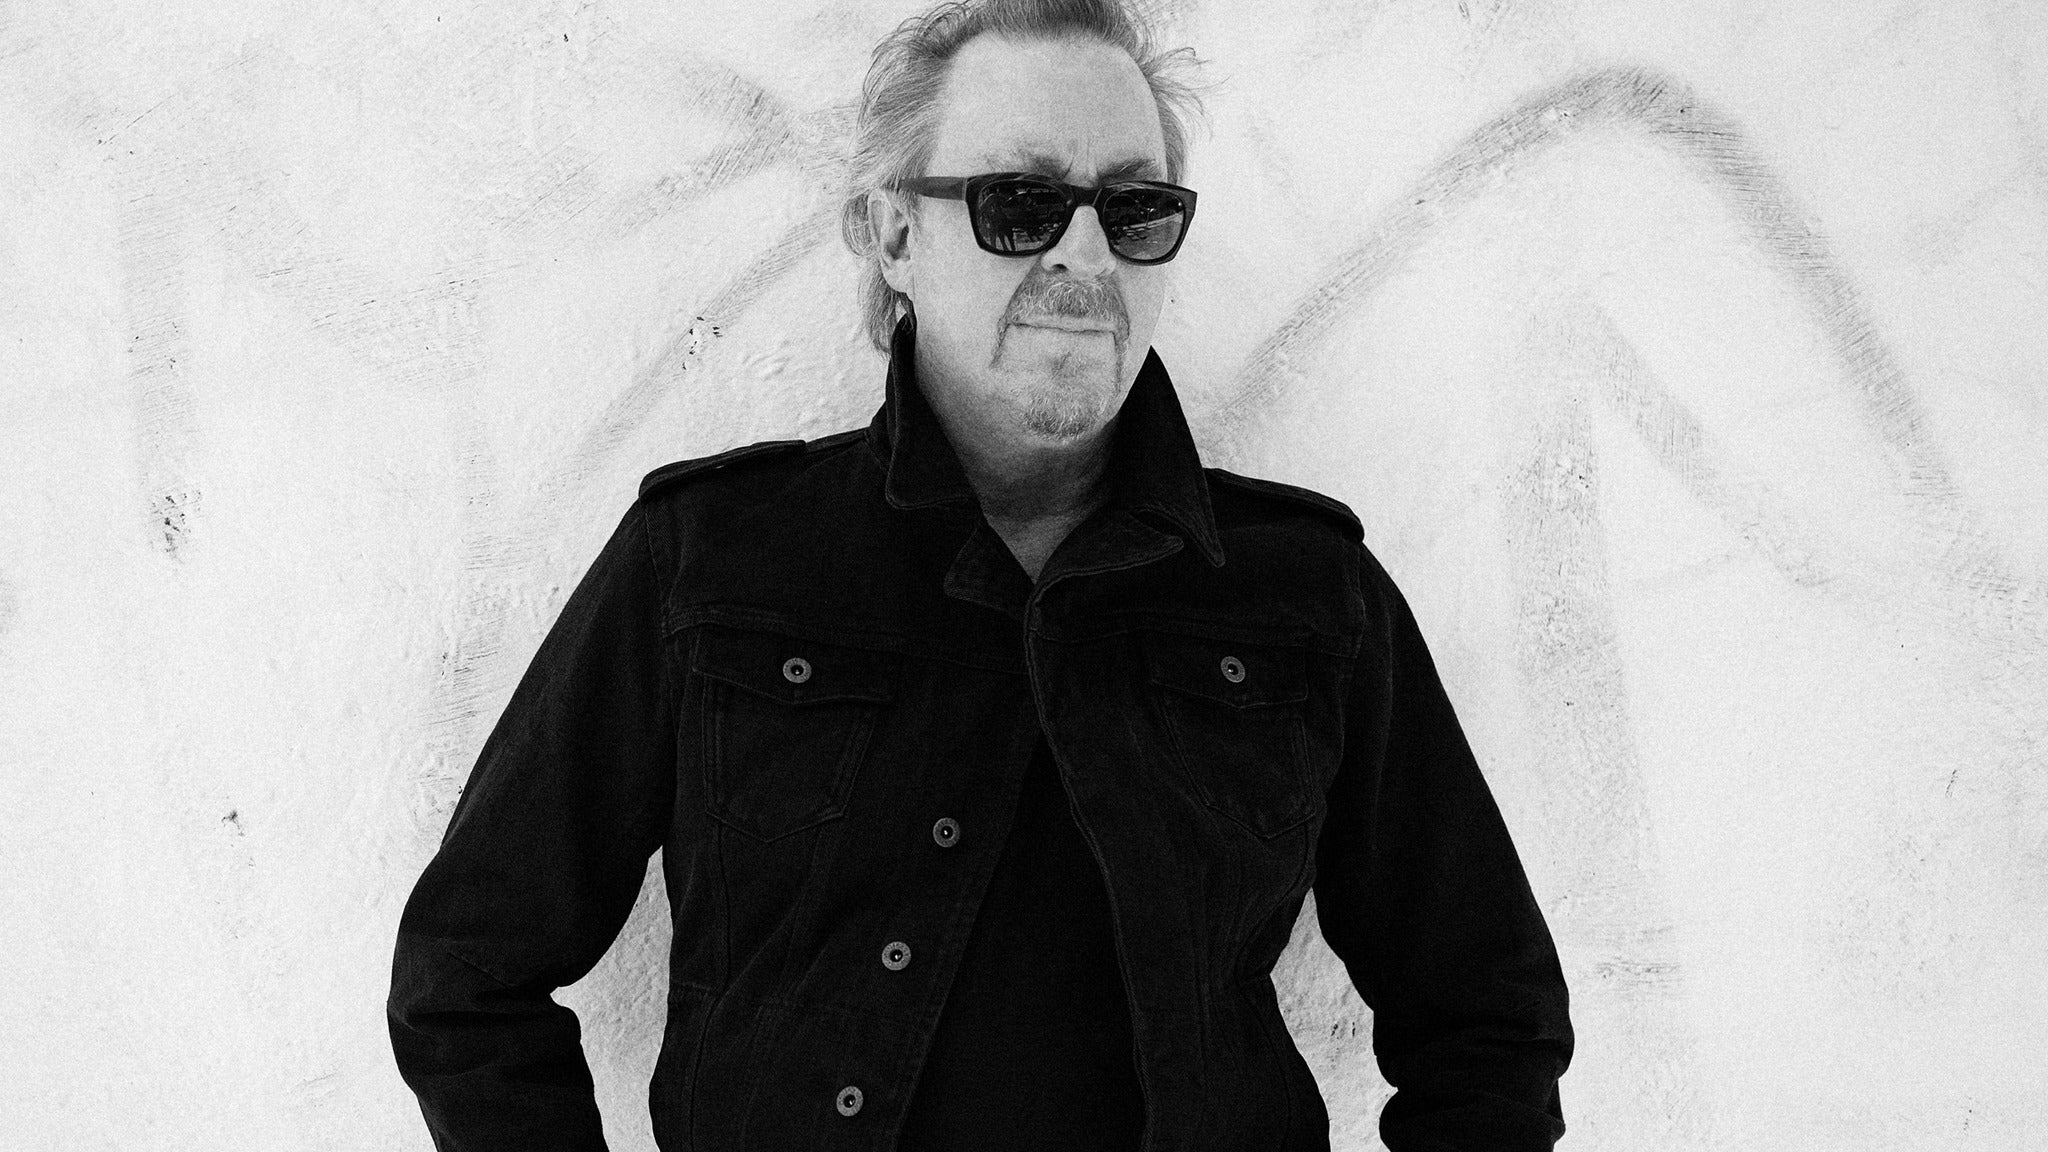 Boz Scaggs at The Rose